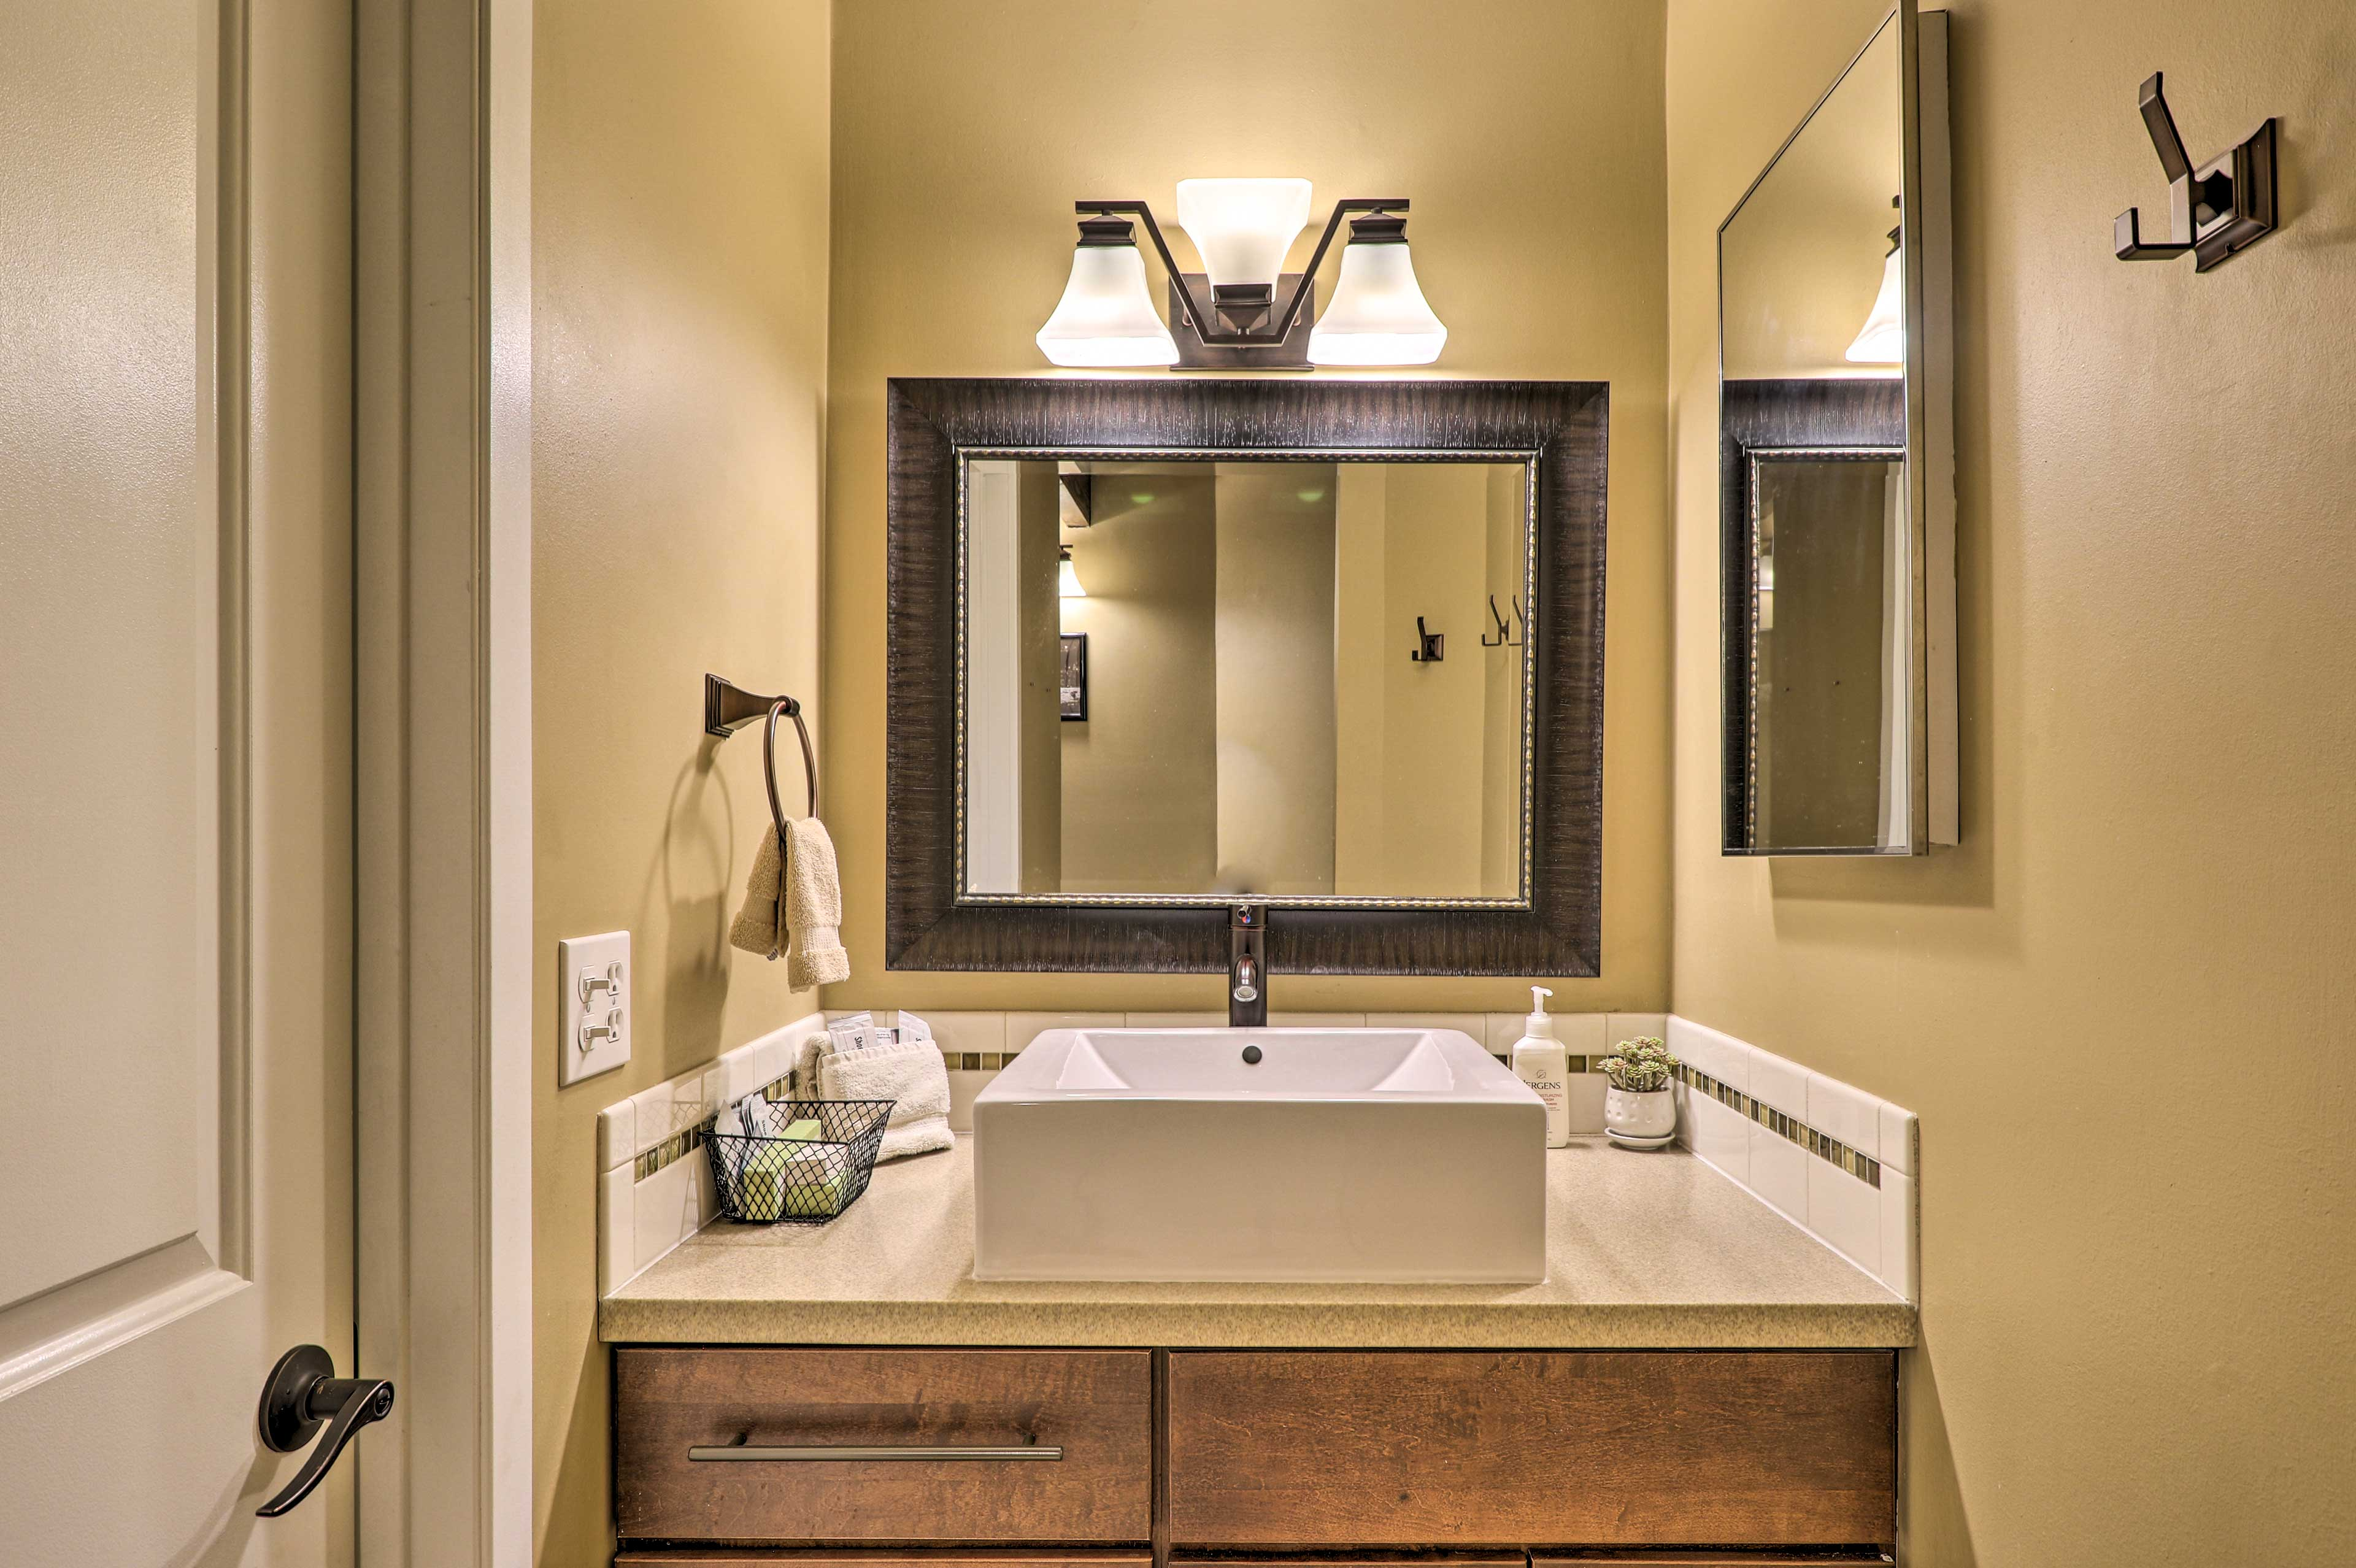 Vessel sinks add a touch of modernity to the bathroom.